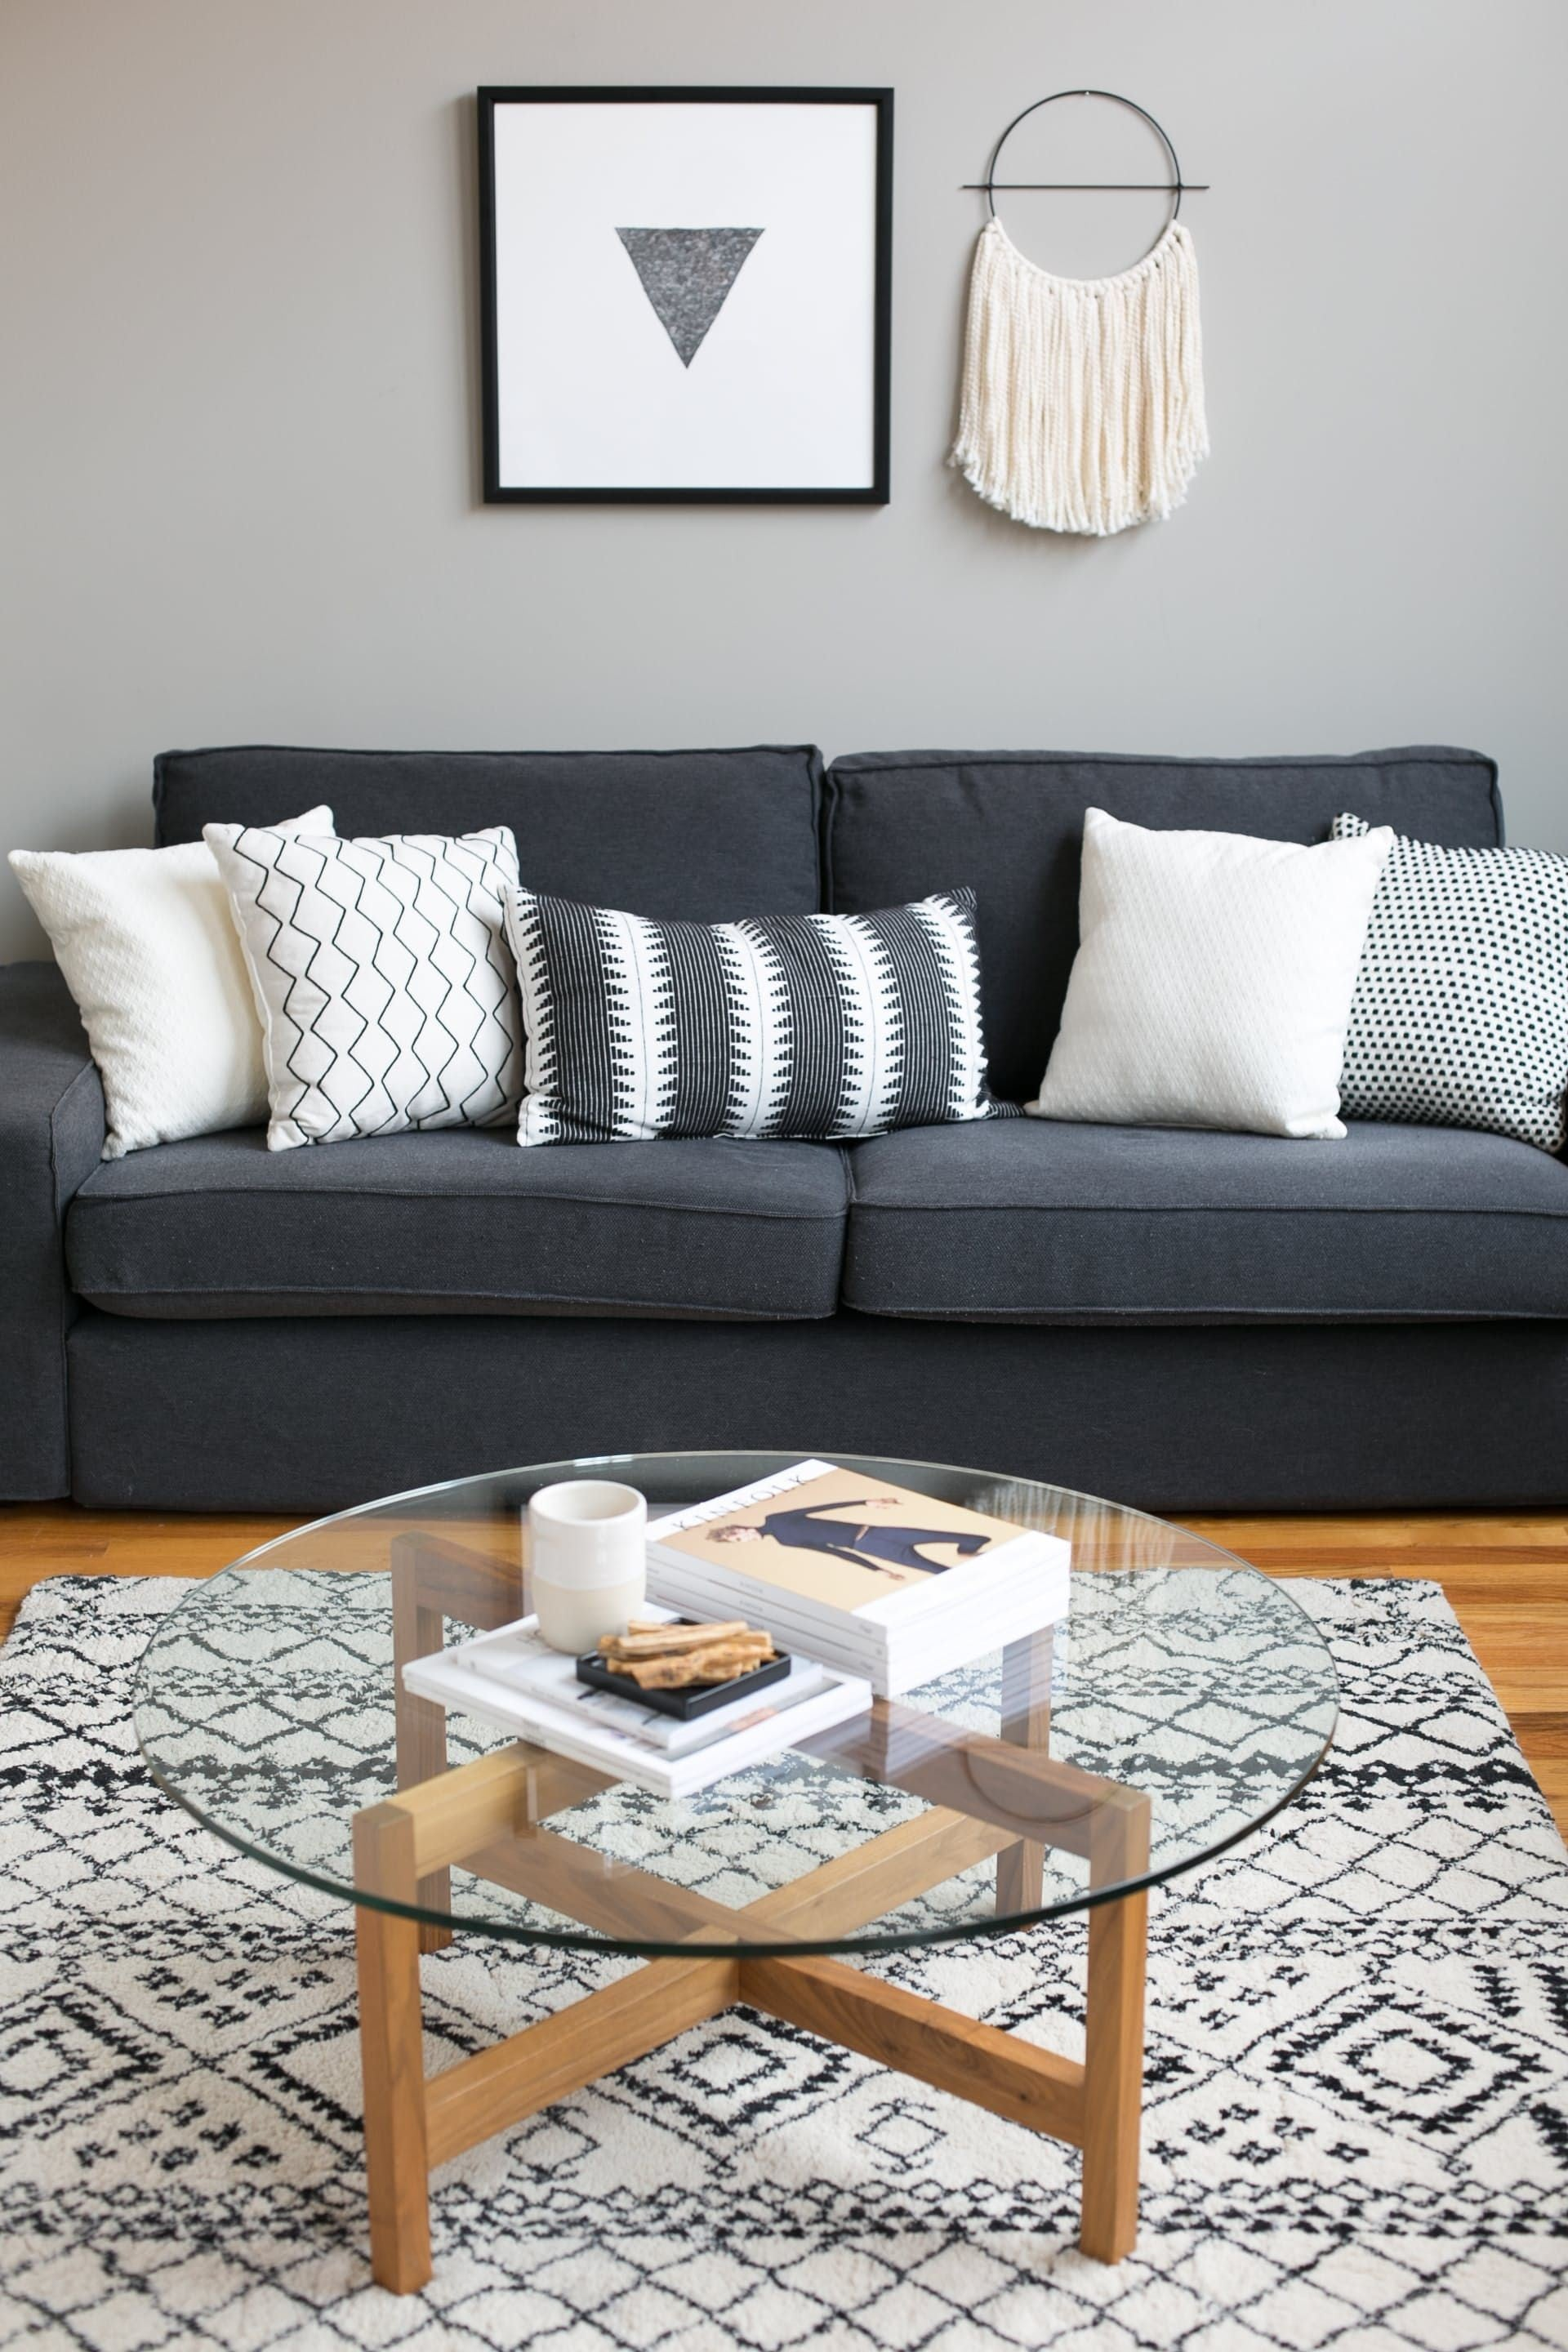 7 Must-Have Accessories For The Modern Living Room – Minimal Spark